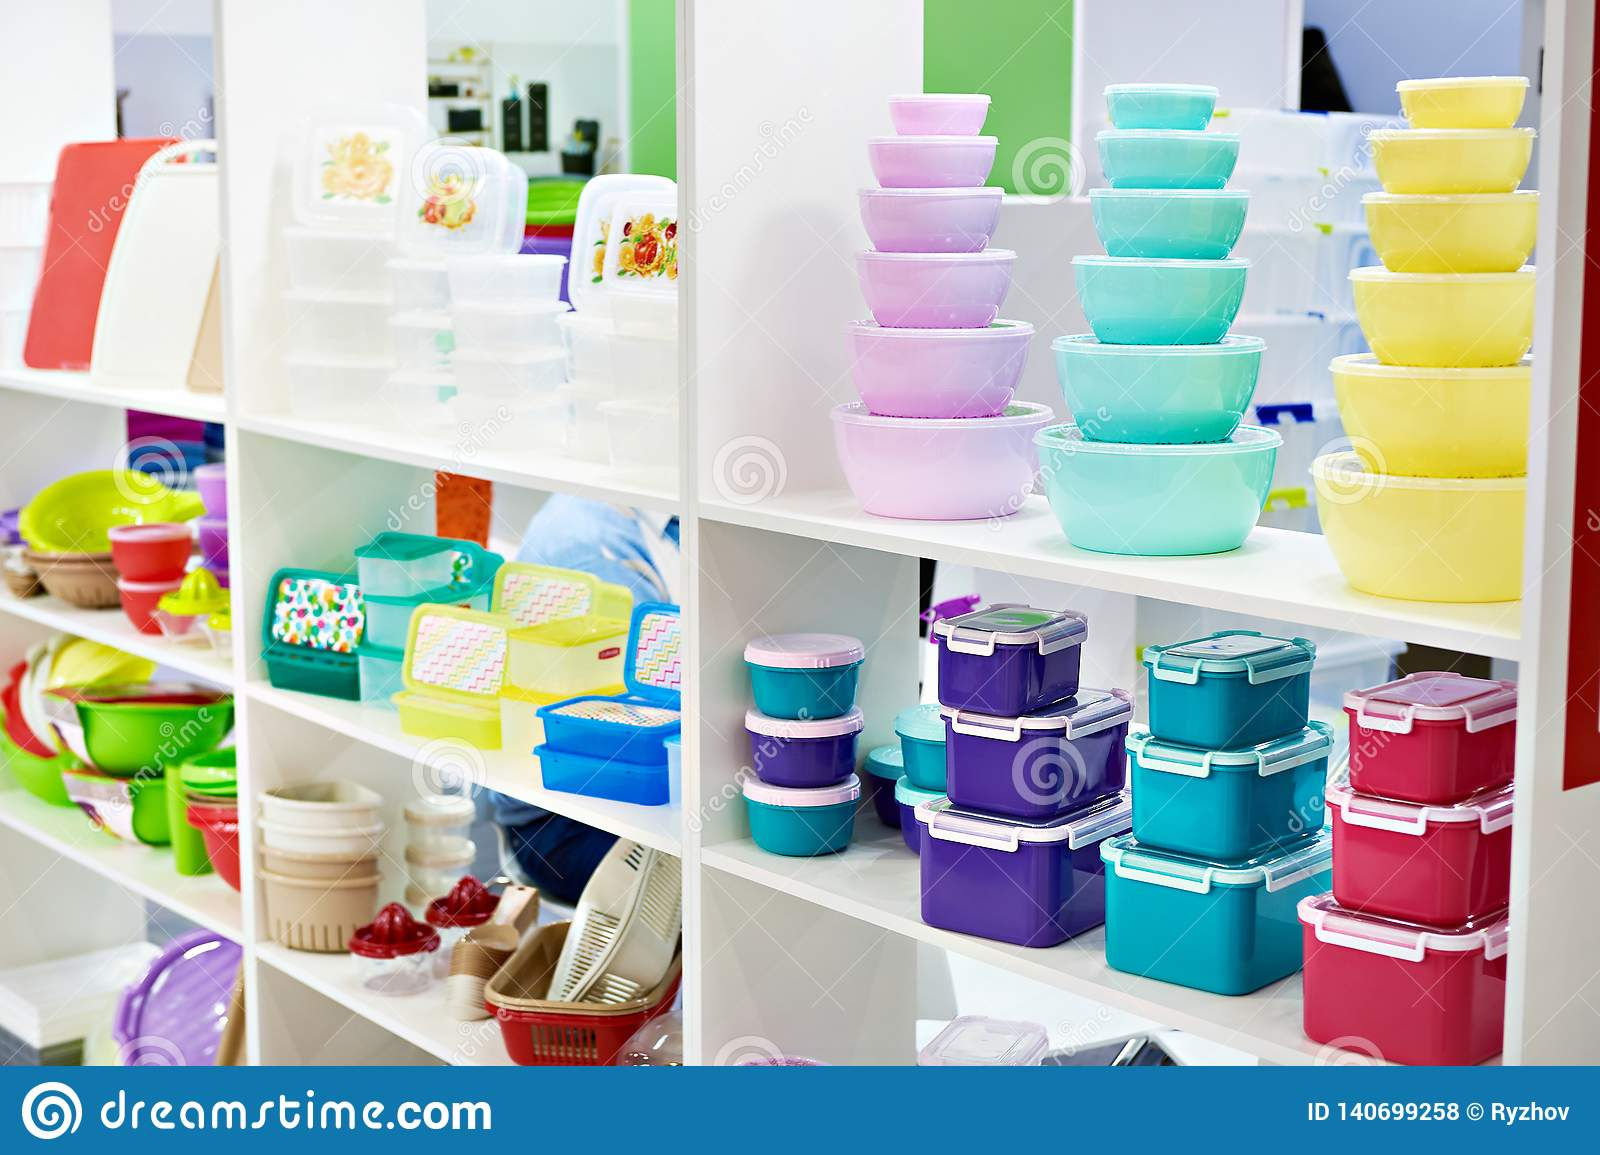 Plastic Kitchen Food Containers In Store Stock Photo - Image ...